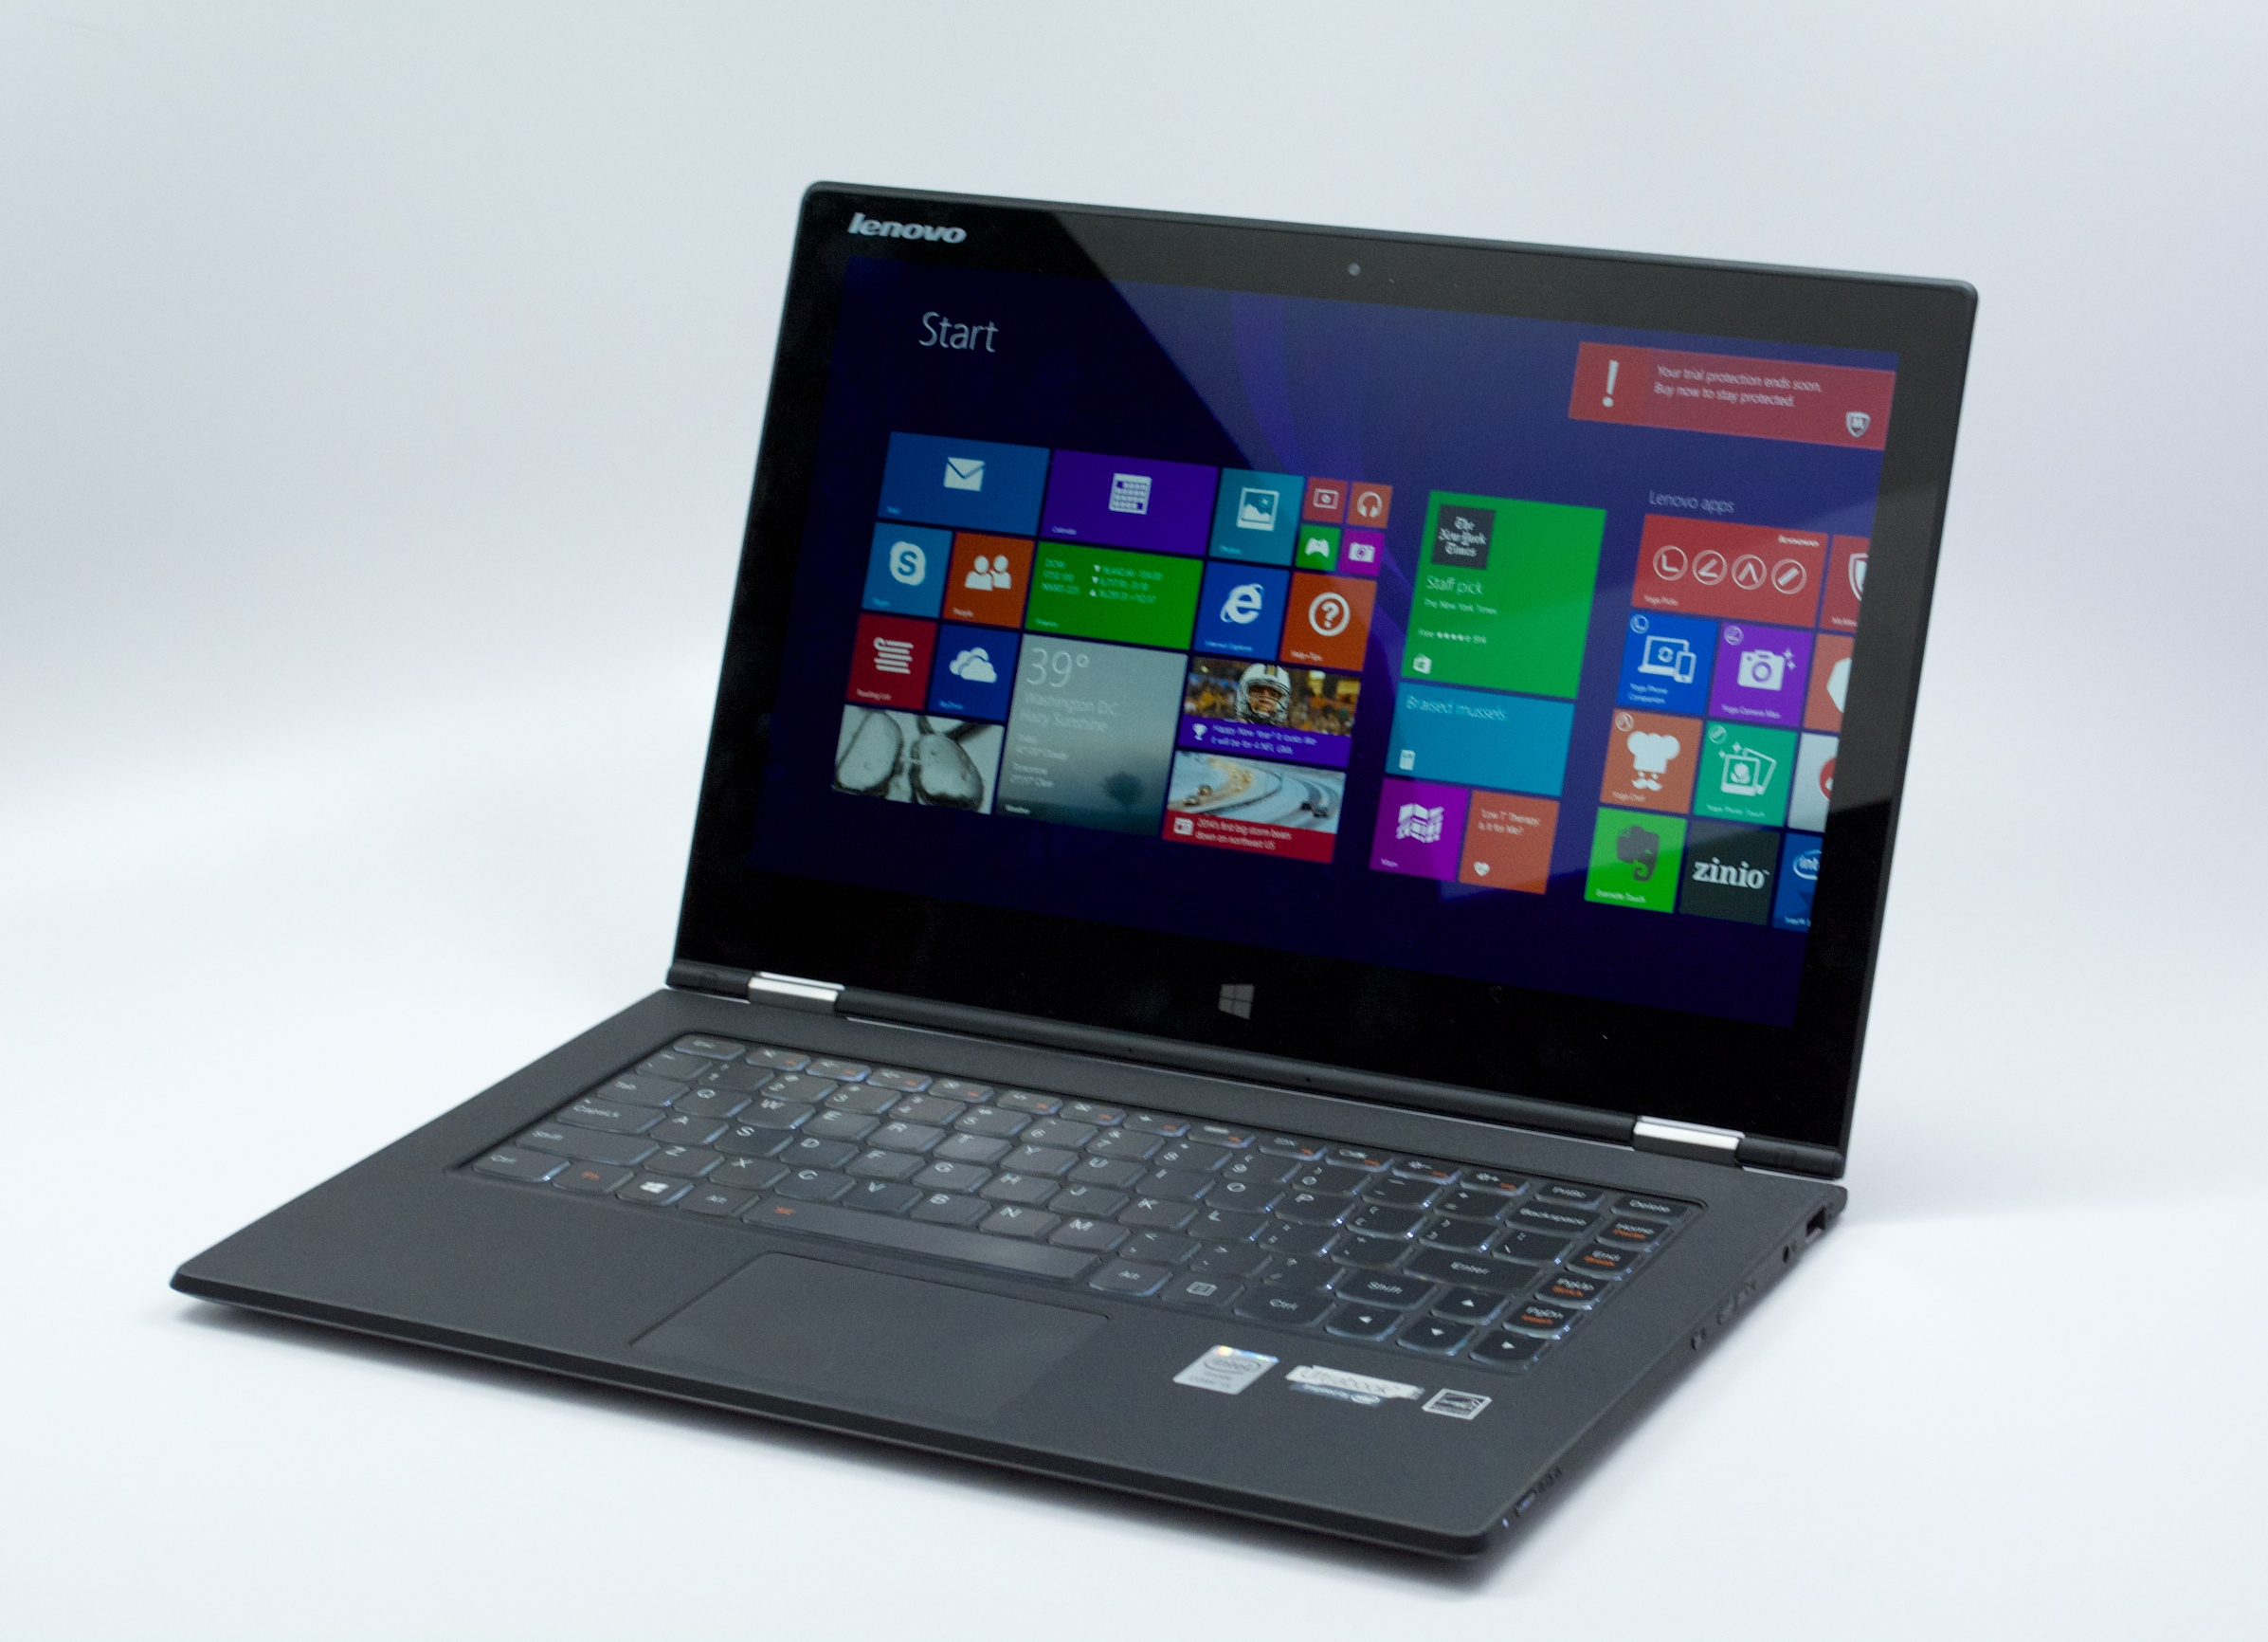 lenovo yoga 2 user guide